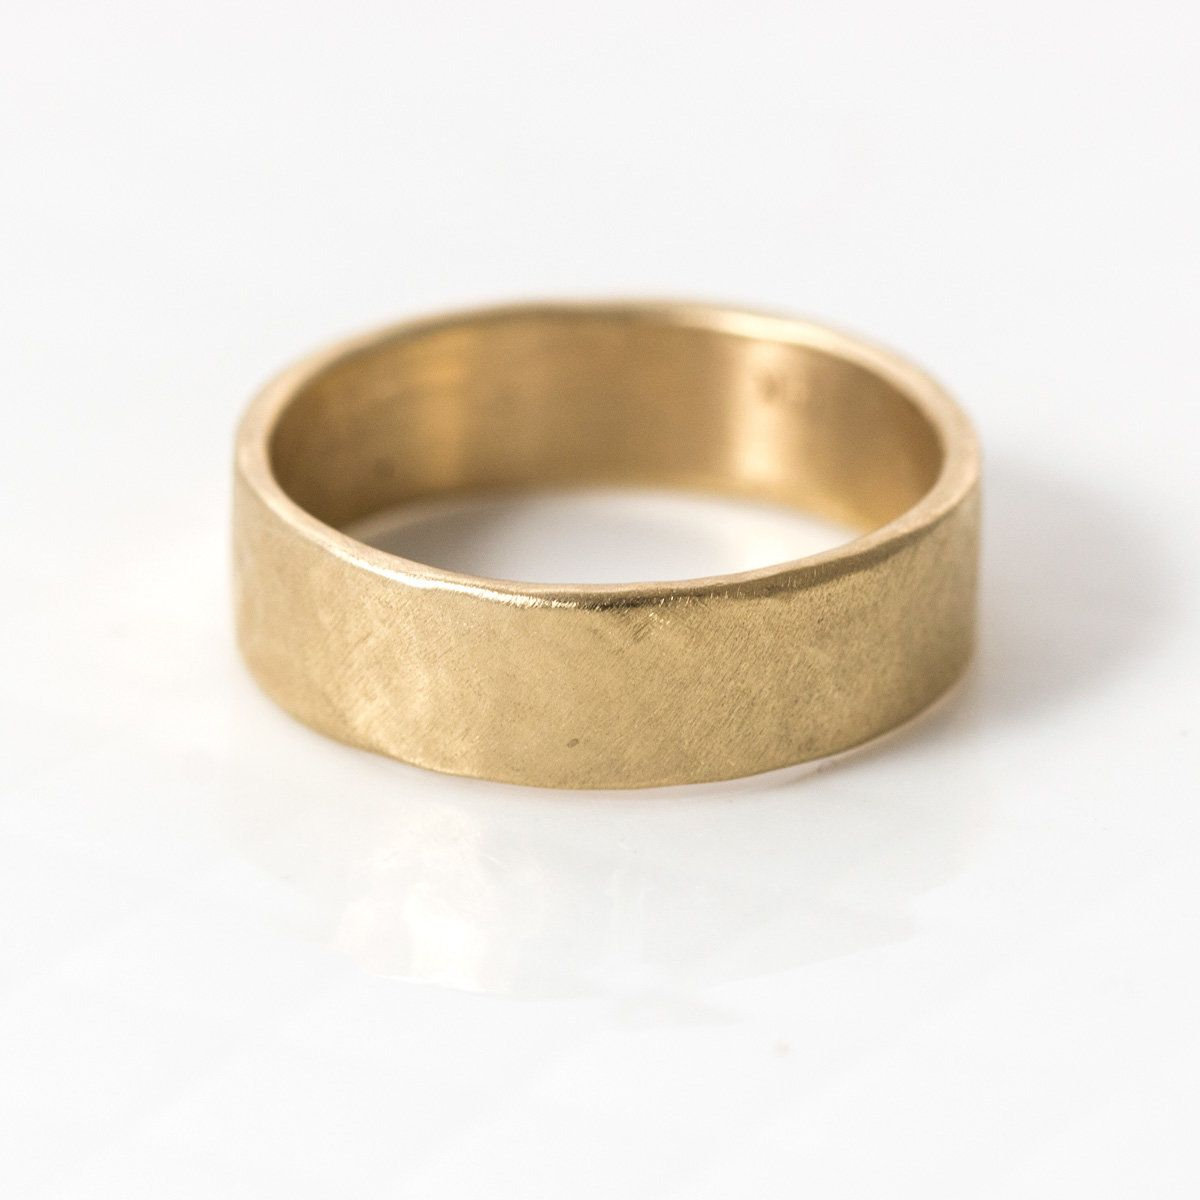 6mm Hammered Wedding Band By Melanie Casey This 6mm X 1 25mm Men S Wedding Band Is Ha With Images Hammered Gold Wedding Band Hammered Wedding Bands Mens Gold Wedding Band